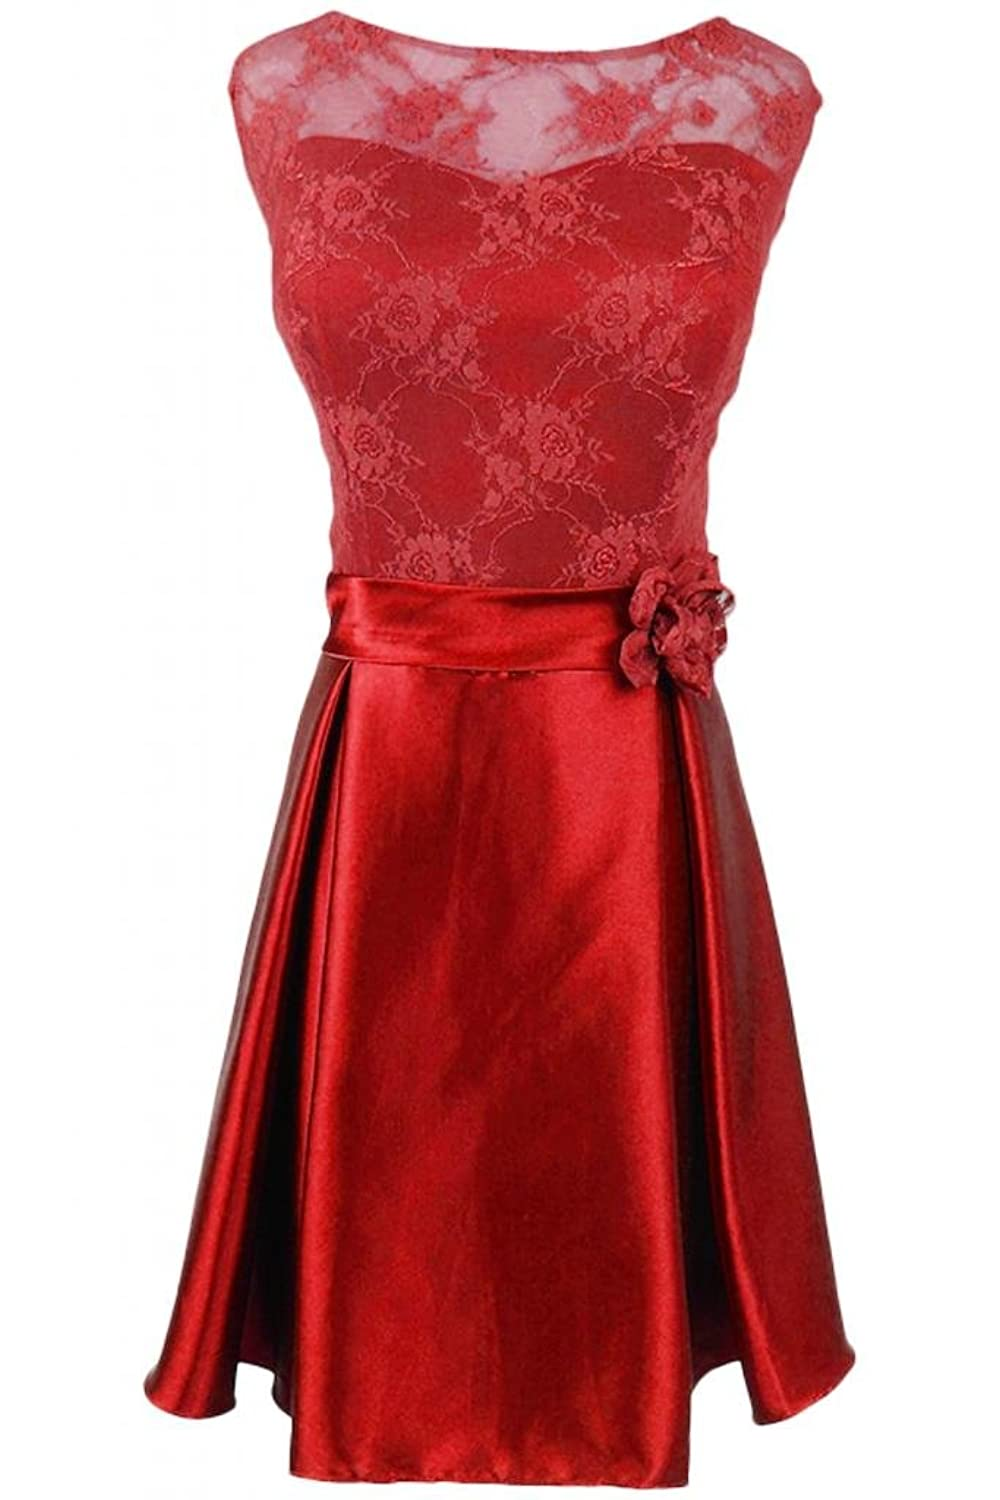 Sunvary Elegant Bateau Neckline Evening Dress Short Prom Party Dresses Pageant Gowns Mother of the Bride Dress